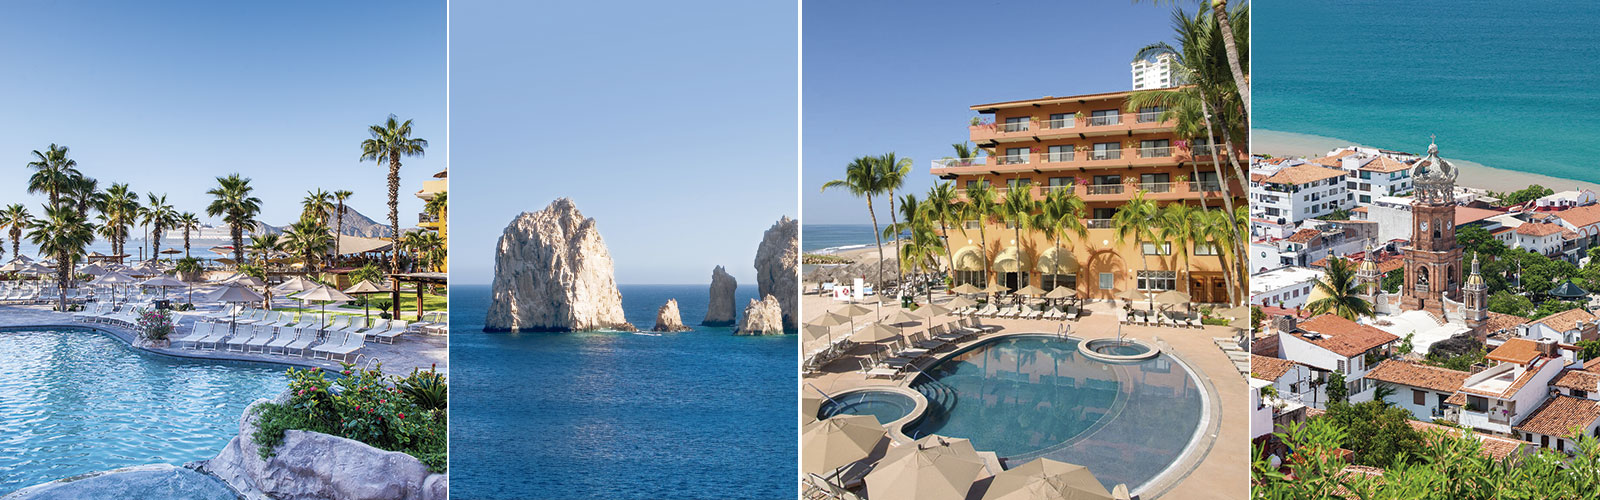 Combined Puerto Vallarta and Los Cabos image